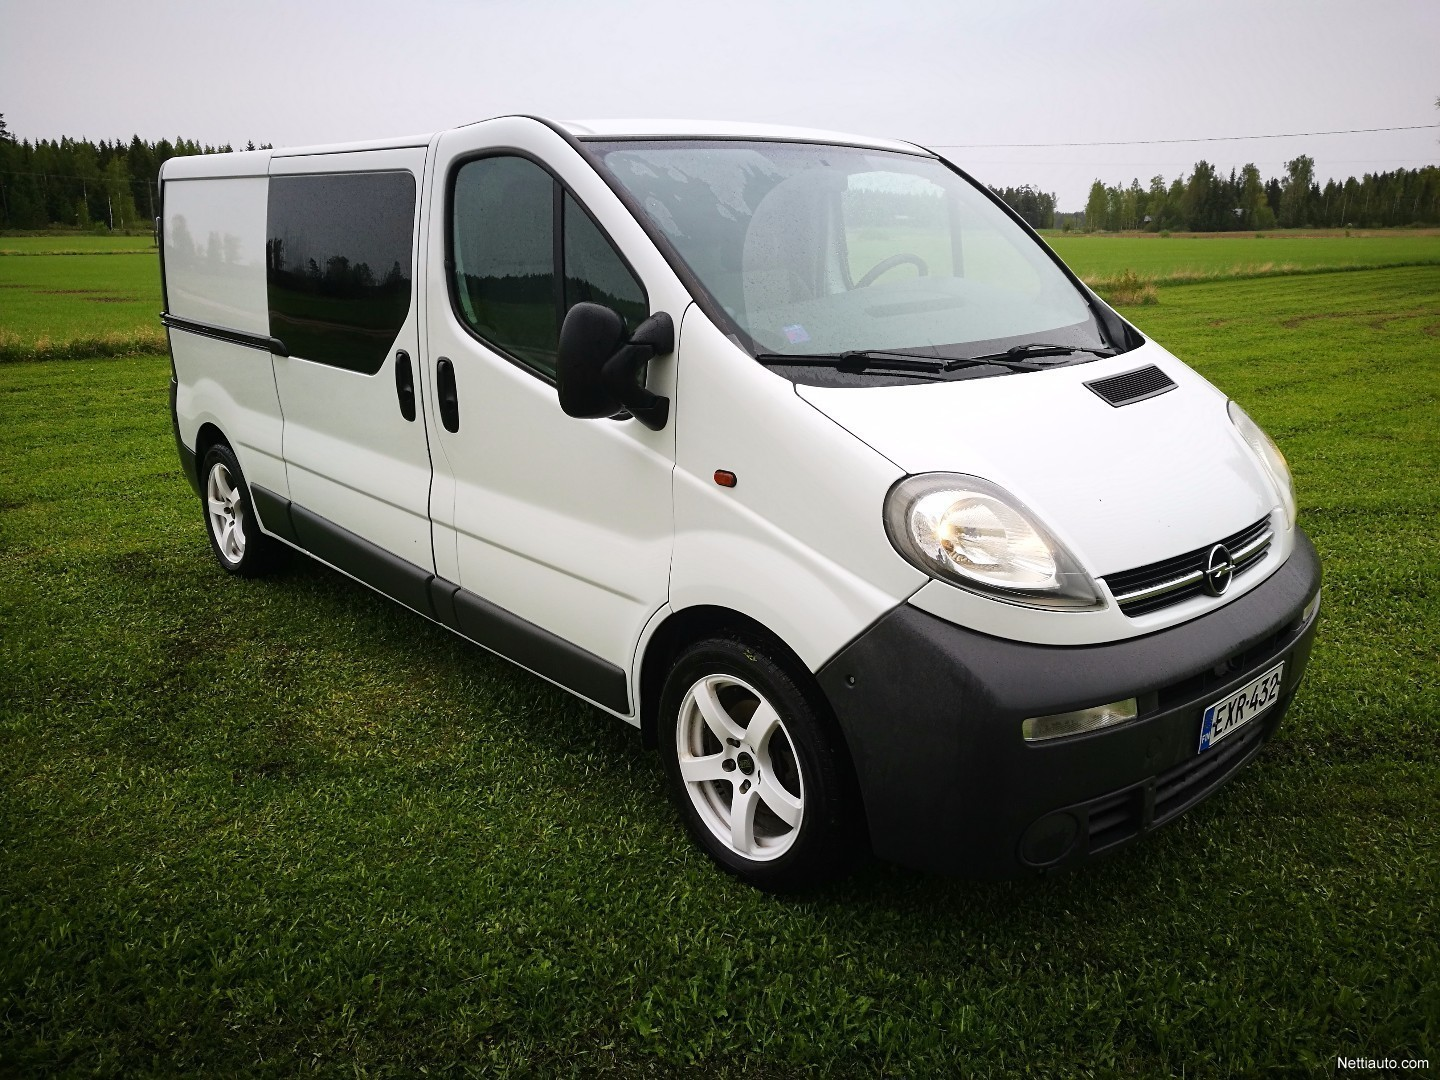 opel vivaro 2 5 cdti van l2h1 pitk long low 2006 used vehicle nettiauto. Black Bedroom Furniture Sets. Home Design Ideas